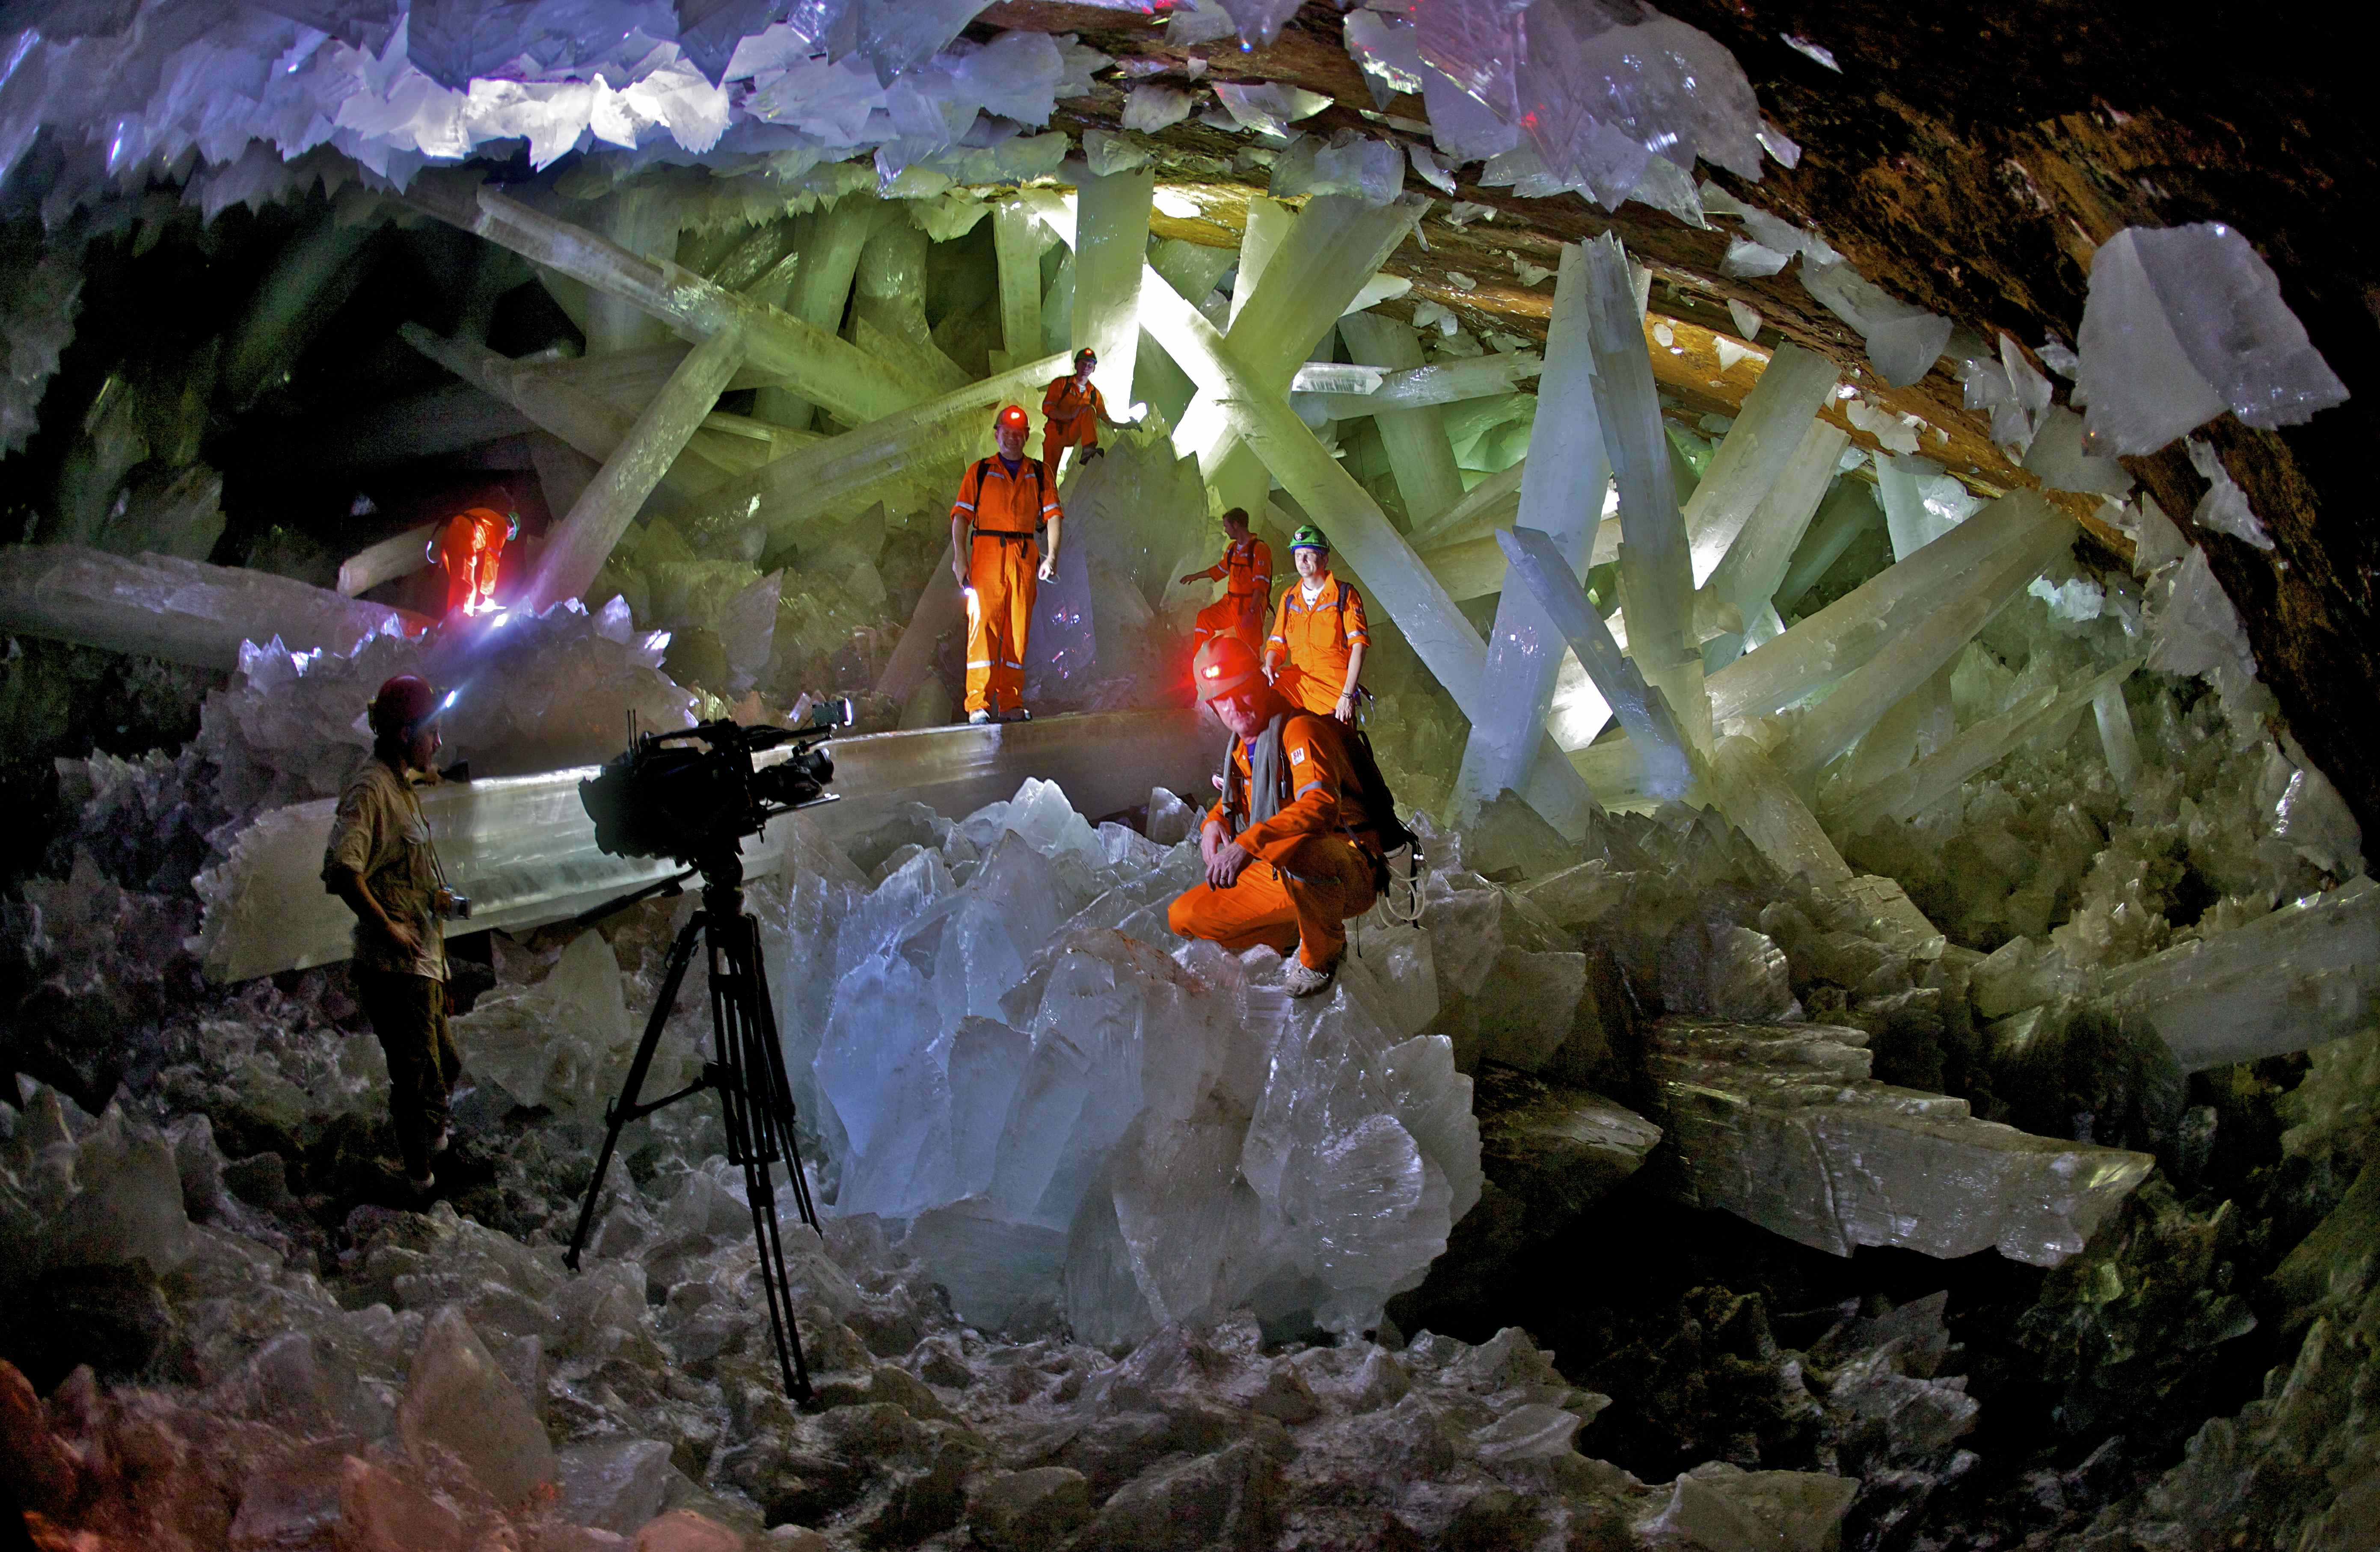 Crystal cave explorers